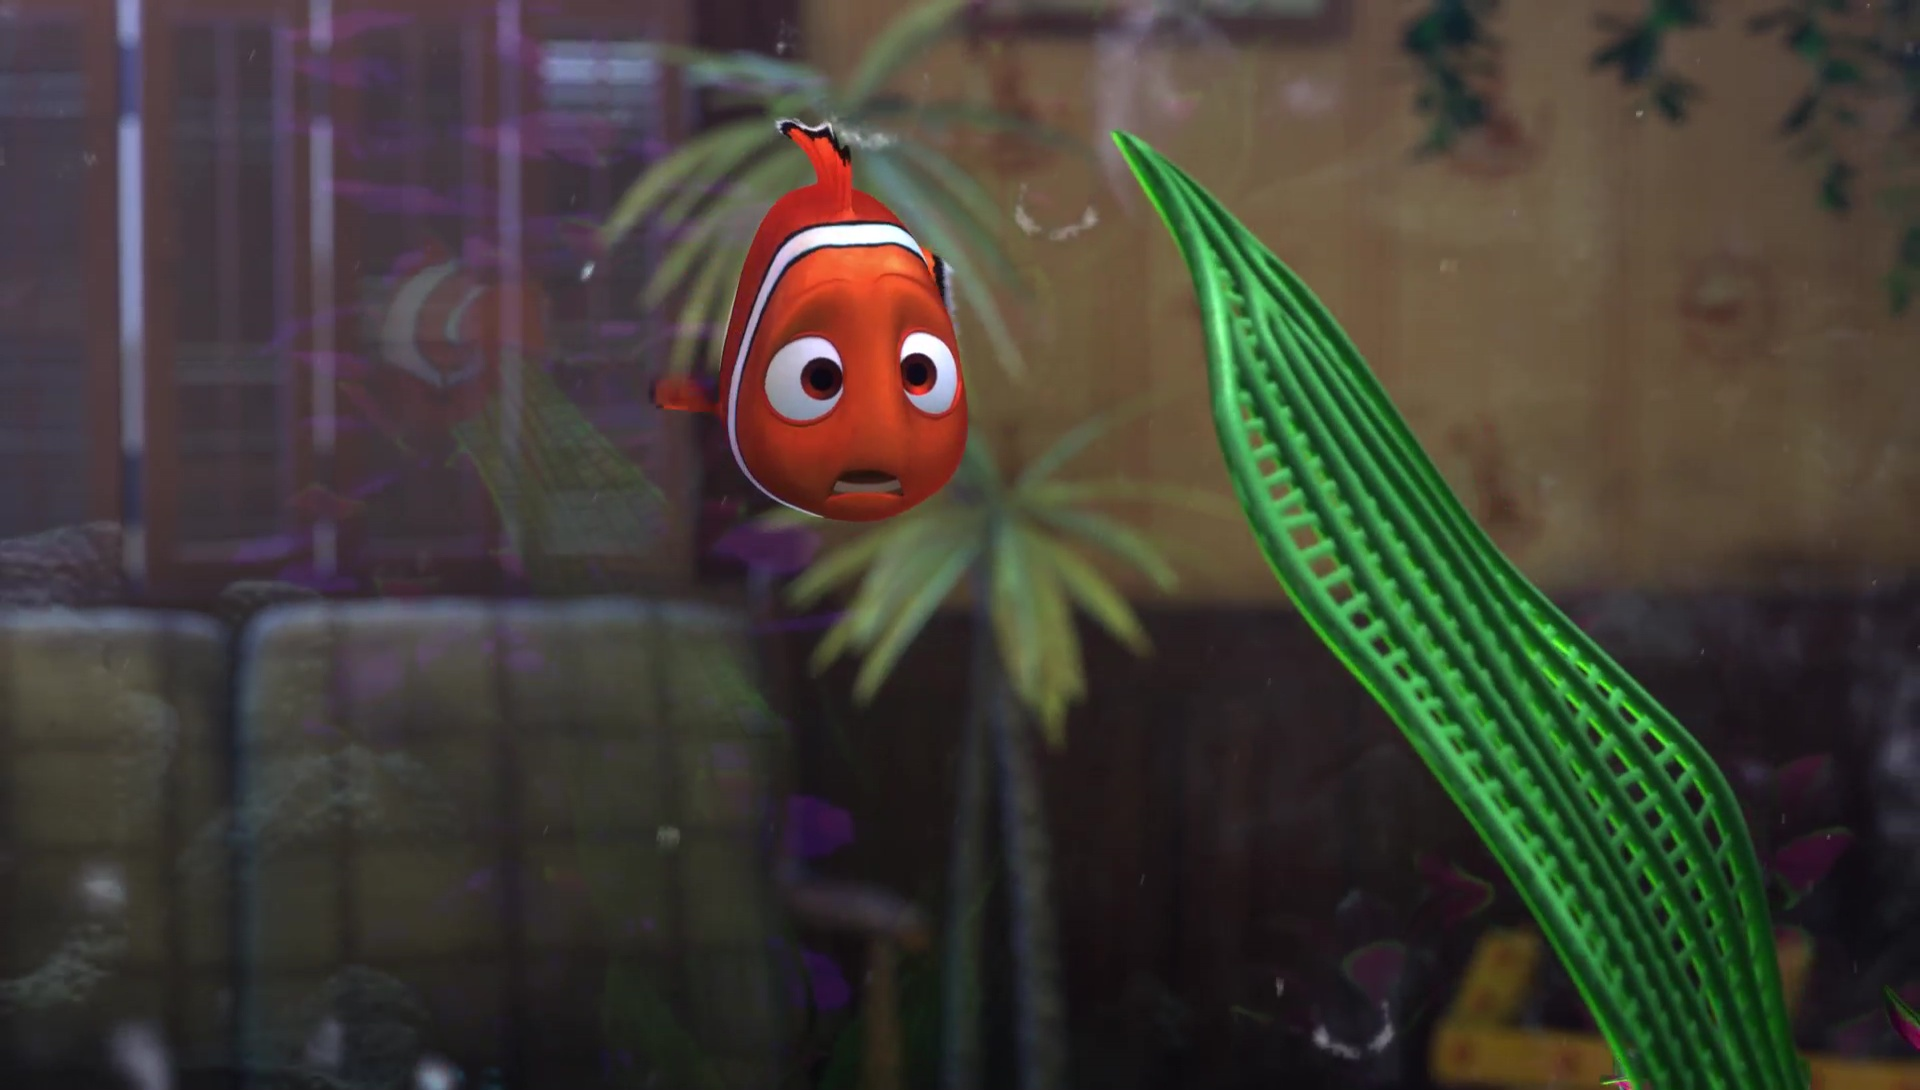 Fish tank nemo - Gill Sees In Him The Way To Get Away For Good Slip Into The Filter To Jam It And Therefore Dirty The Fish Tank Nemo At First Fails In His First Attempt